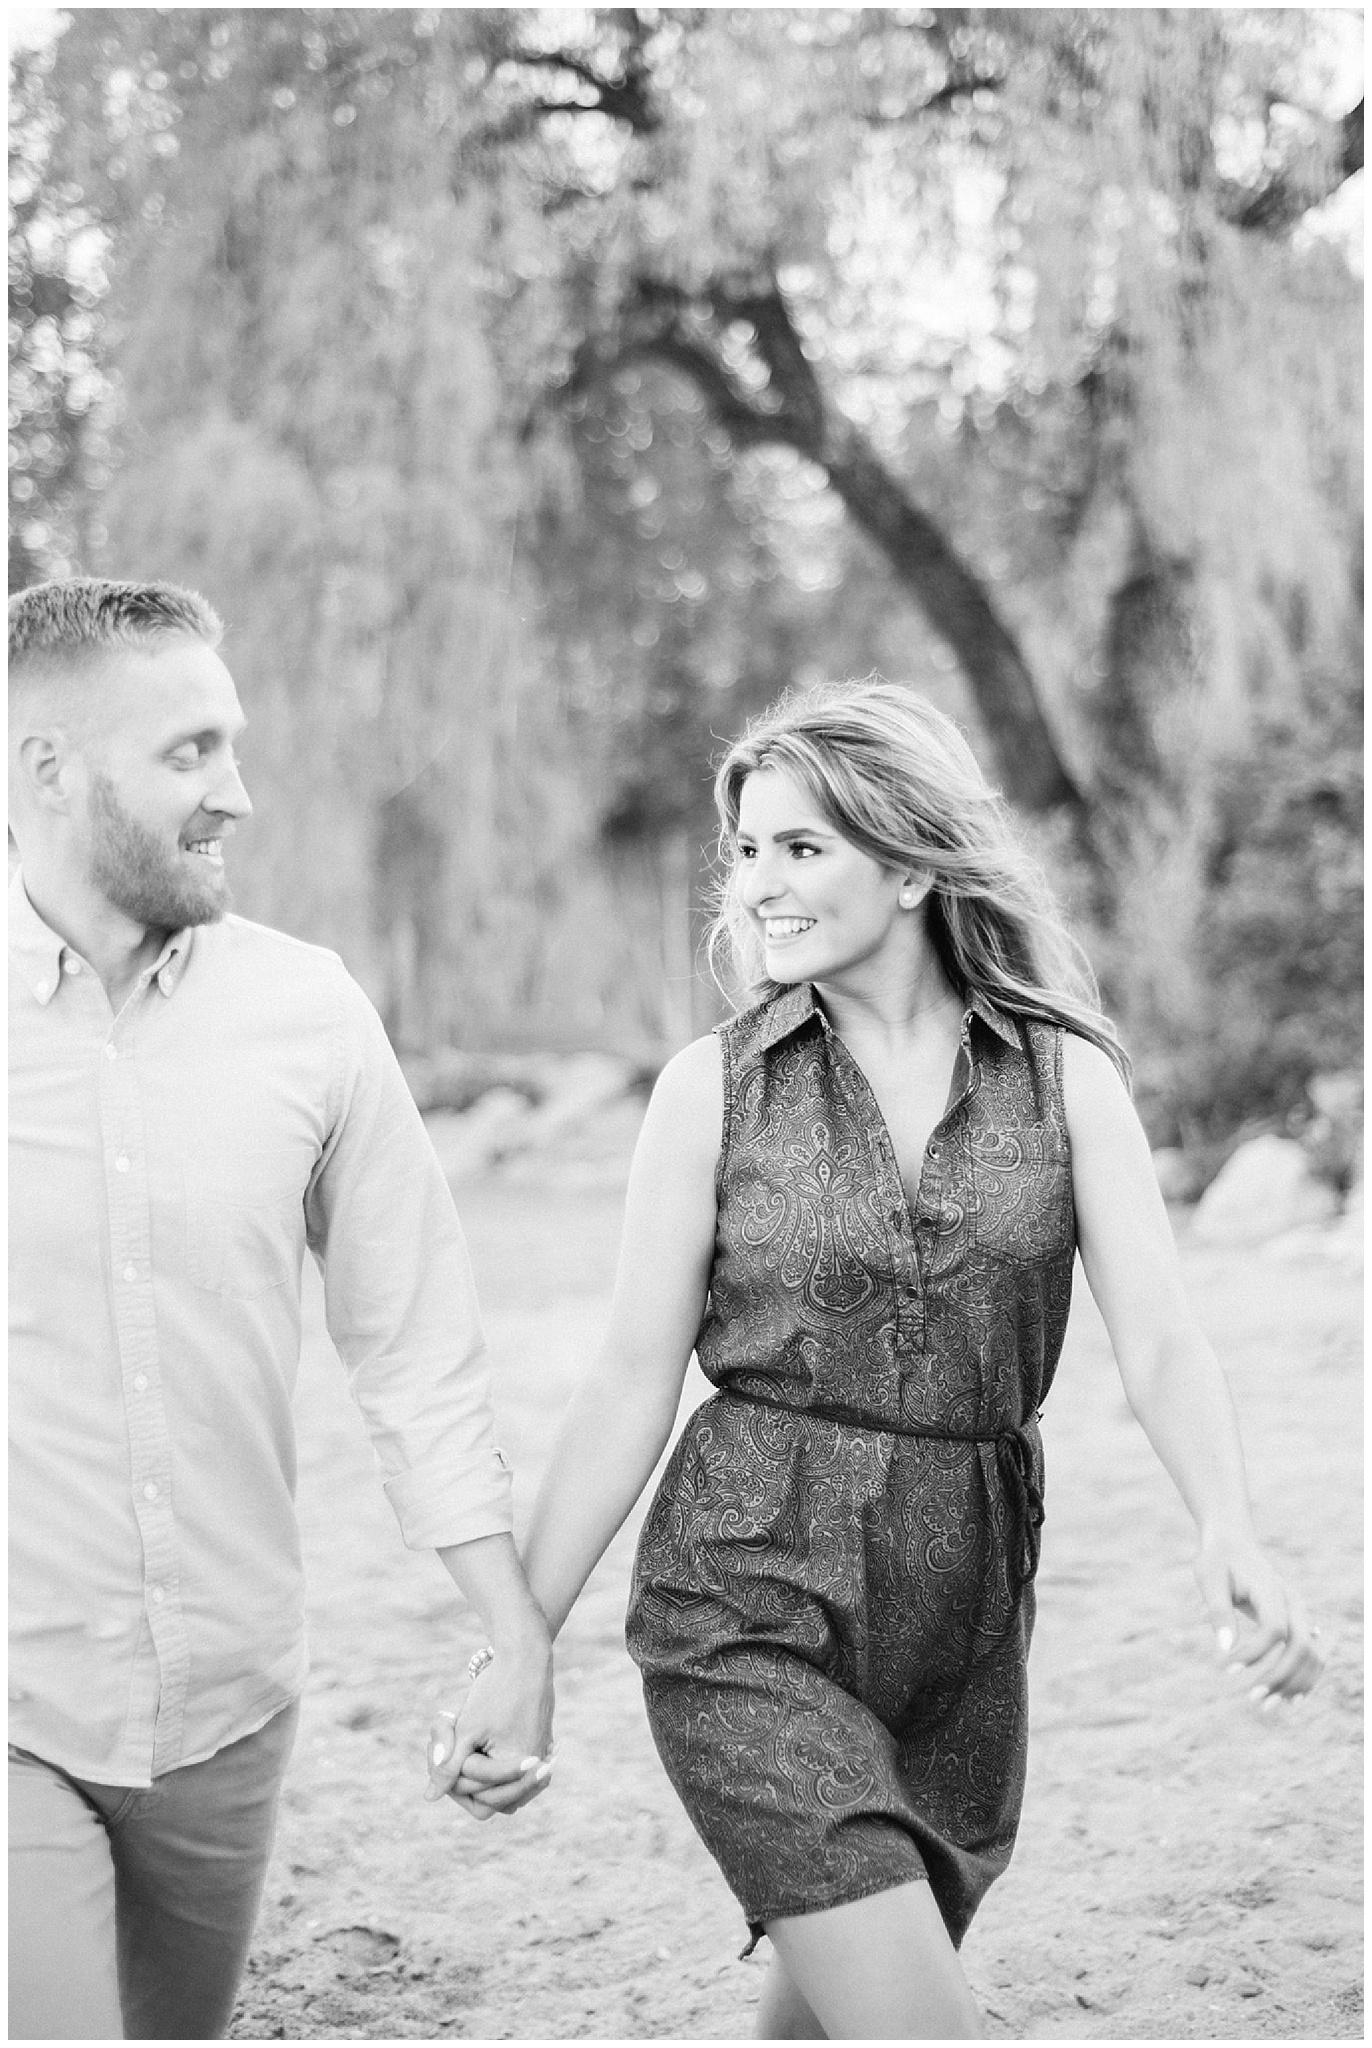 Lakeside Engagement Session by Jenn Kavanagh Photography